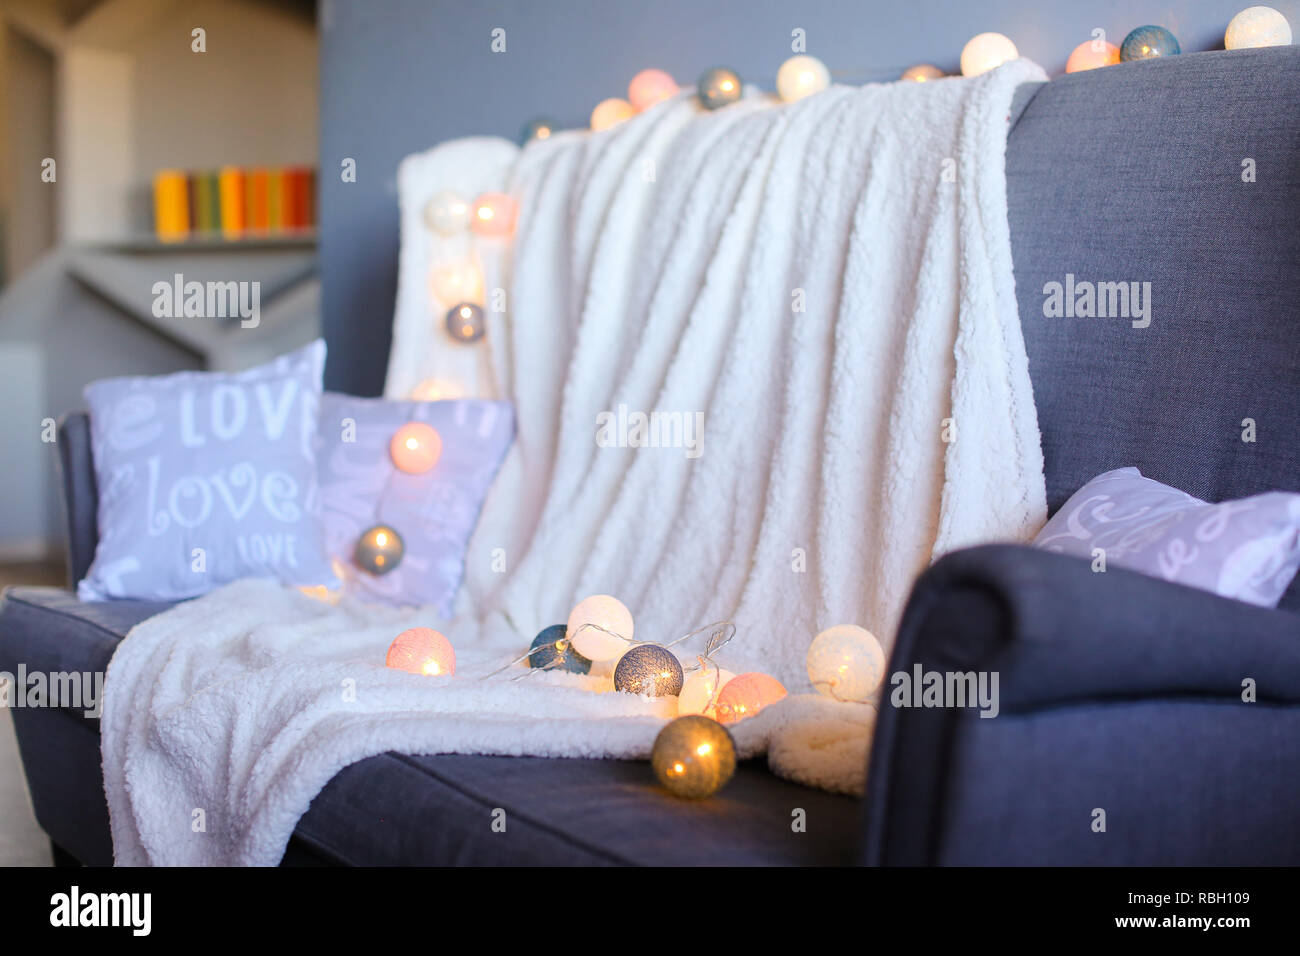 Yellow garlands on sofa and white plaid. - Stock Image